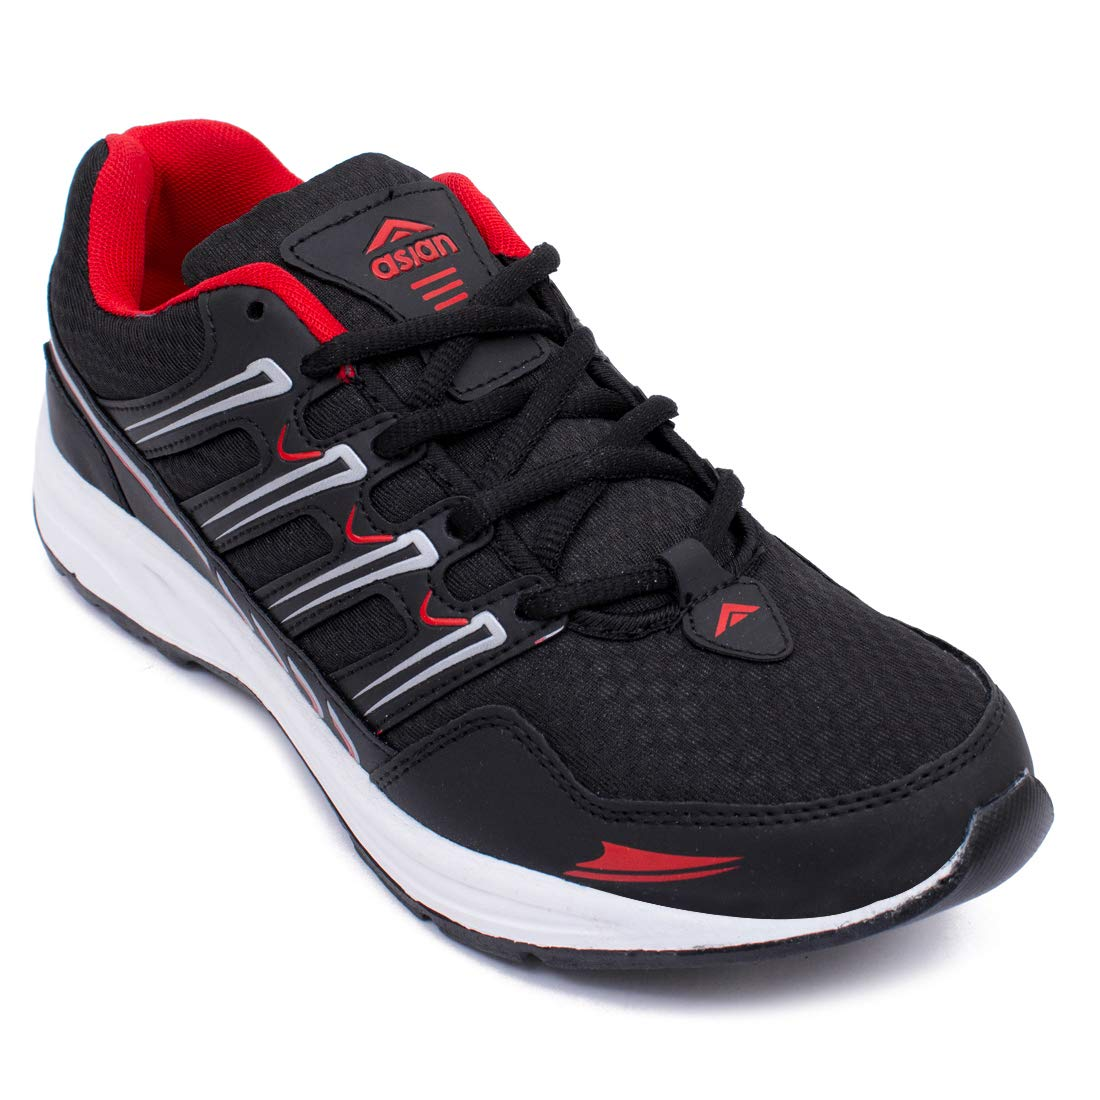 Asian Wonder 11 Running Shoes Training Shoes Gym Shoes Sports